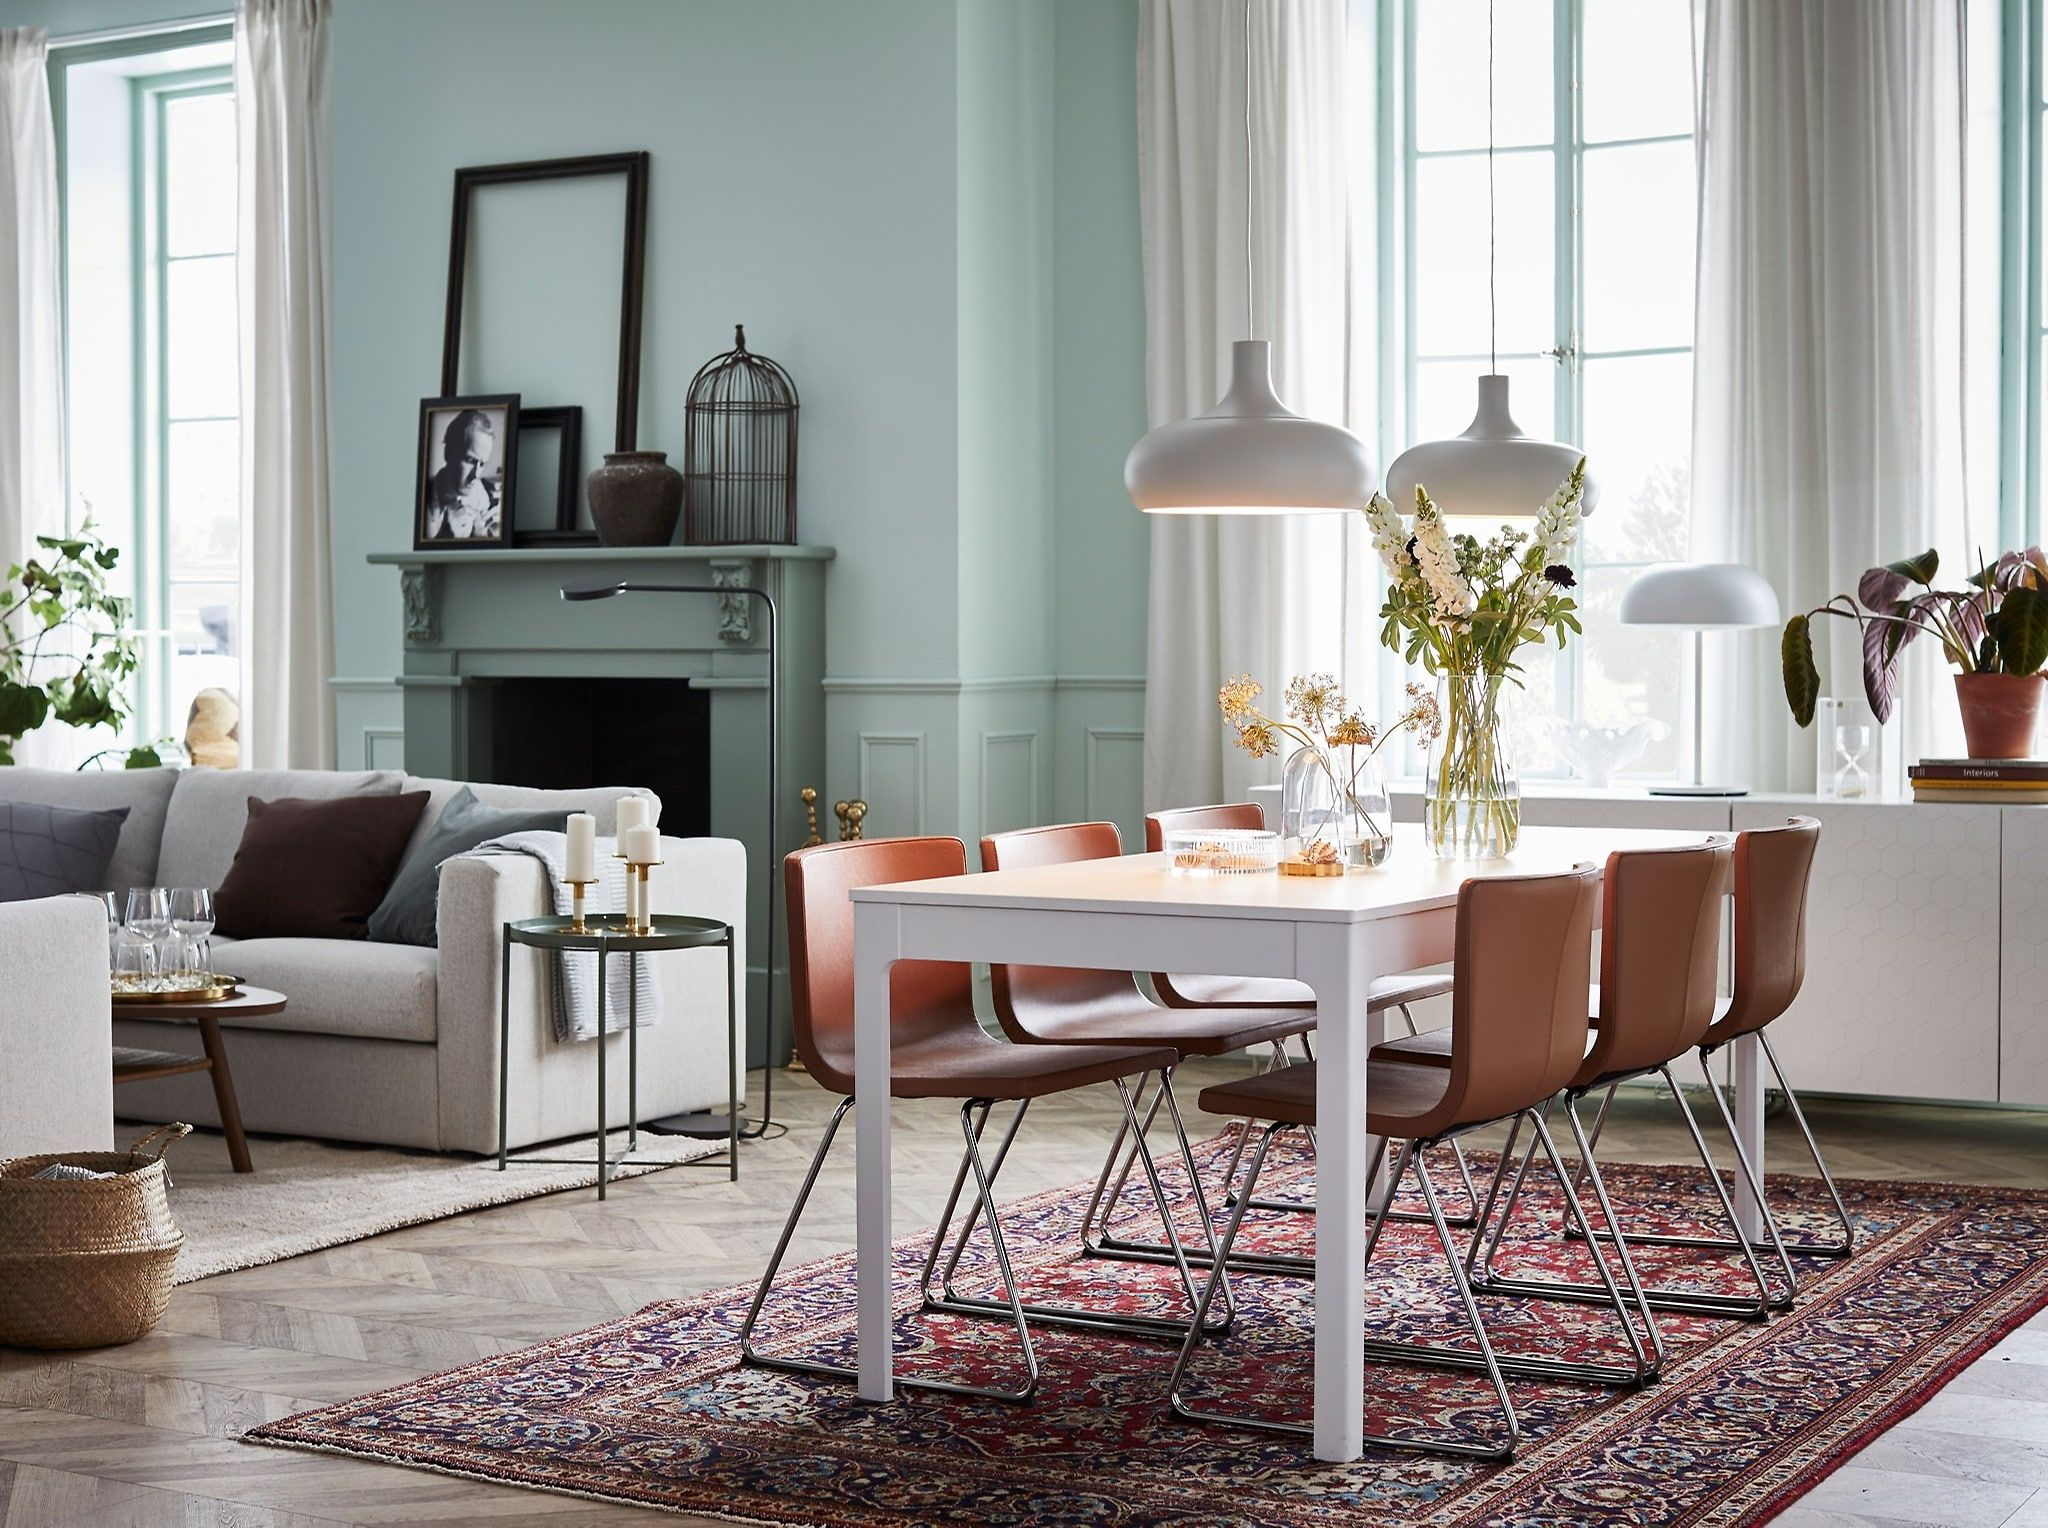 30 Great Image Of Ideas Dining Room Janicereyesphotography Com Dining Room Furniture Dining Table Modern Dining